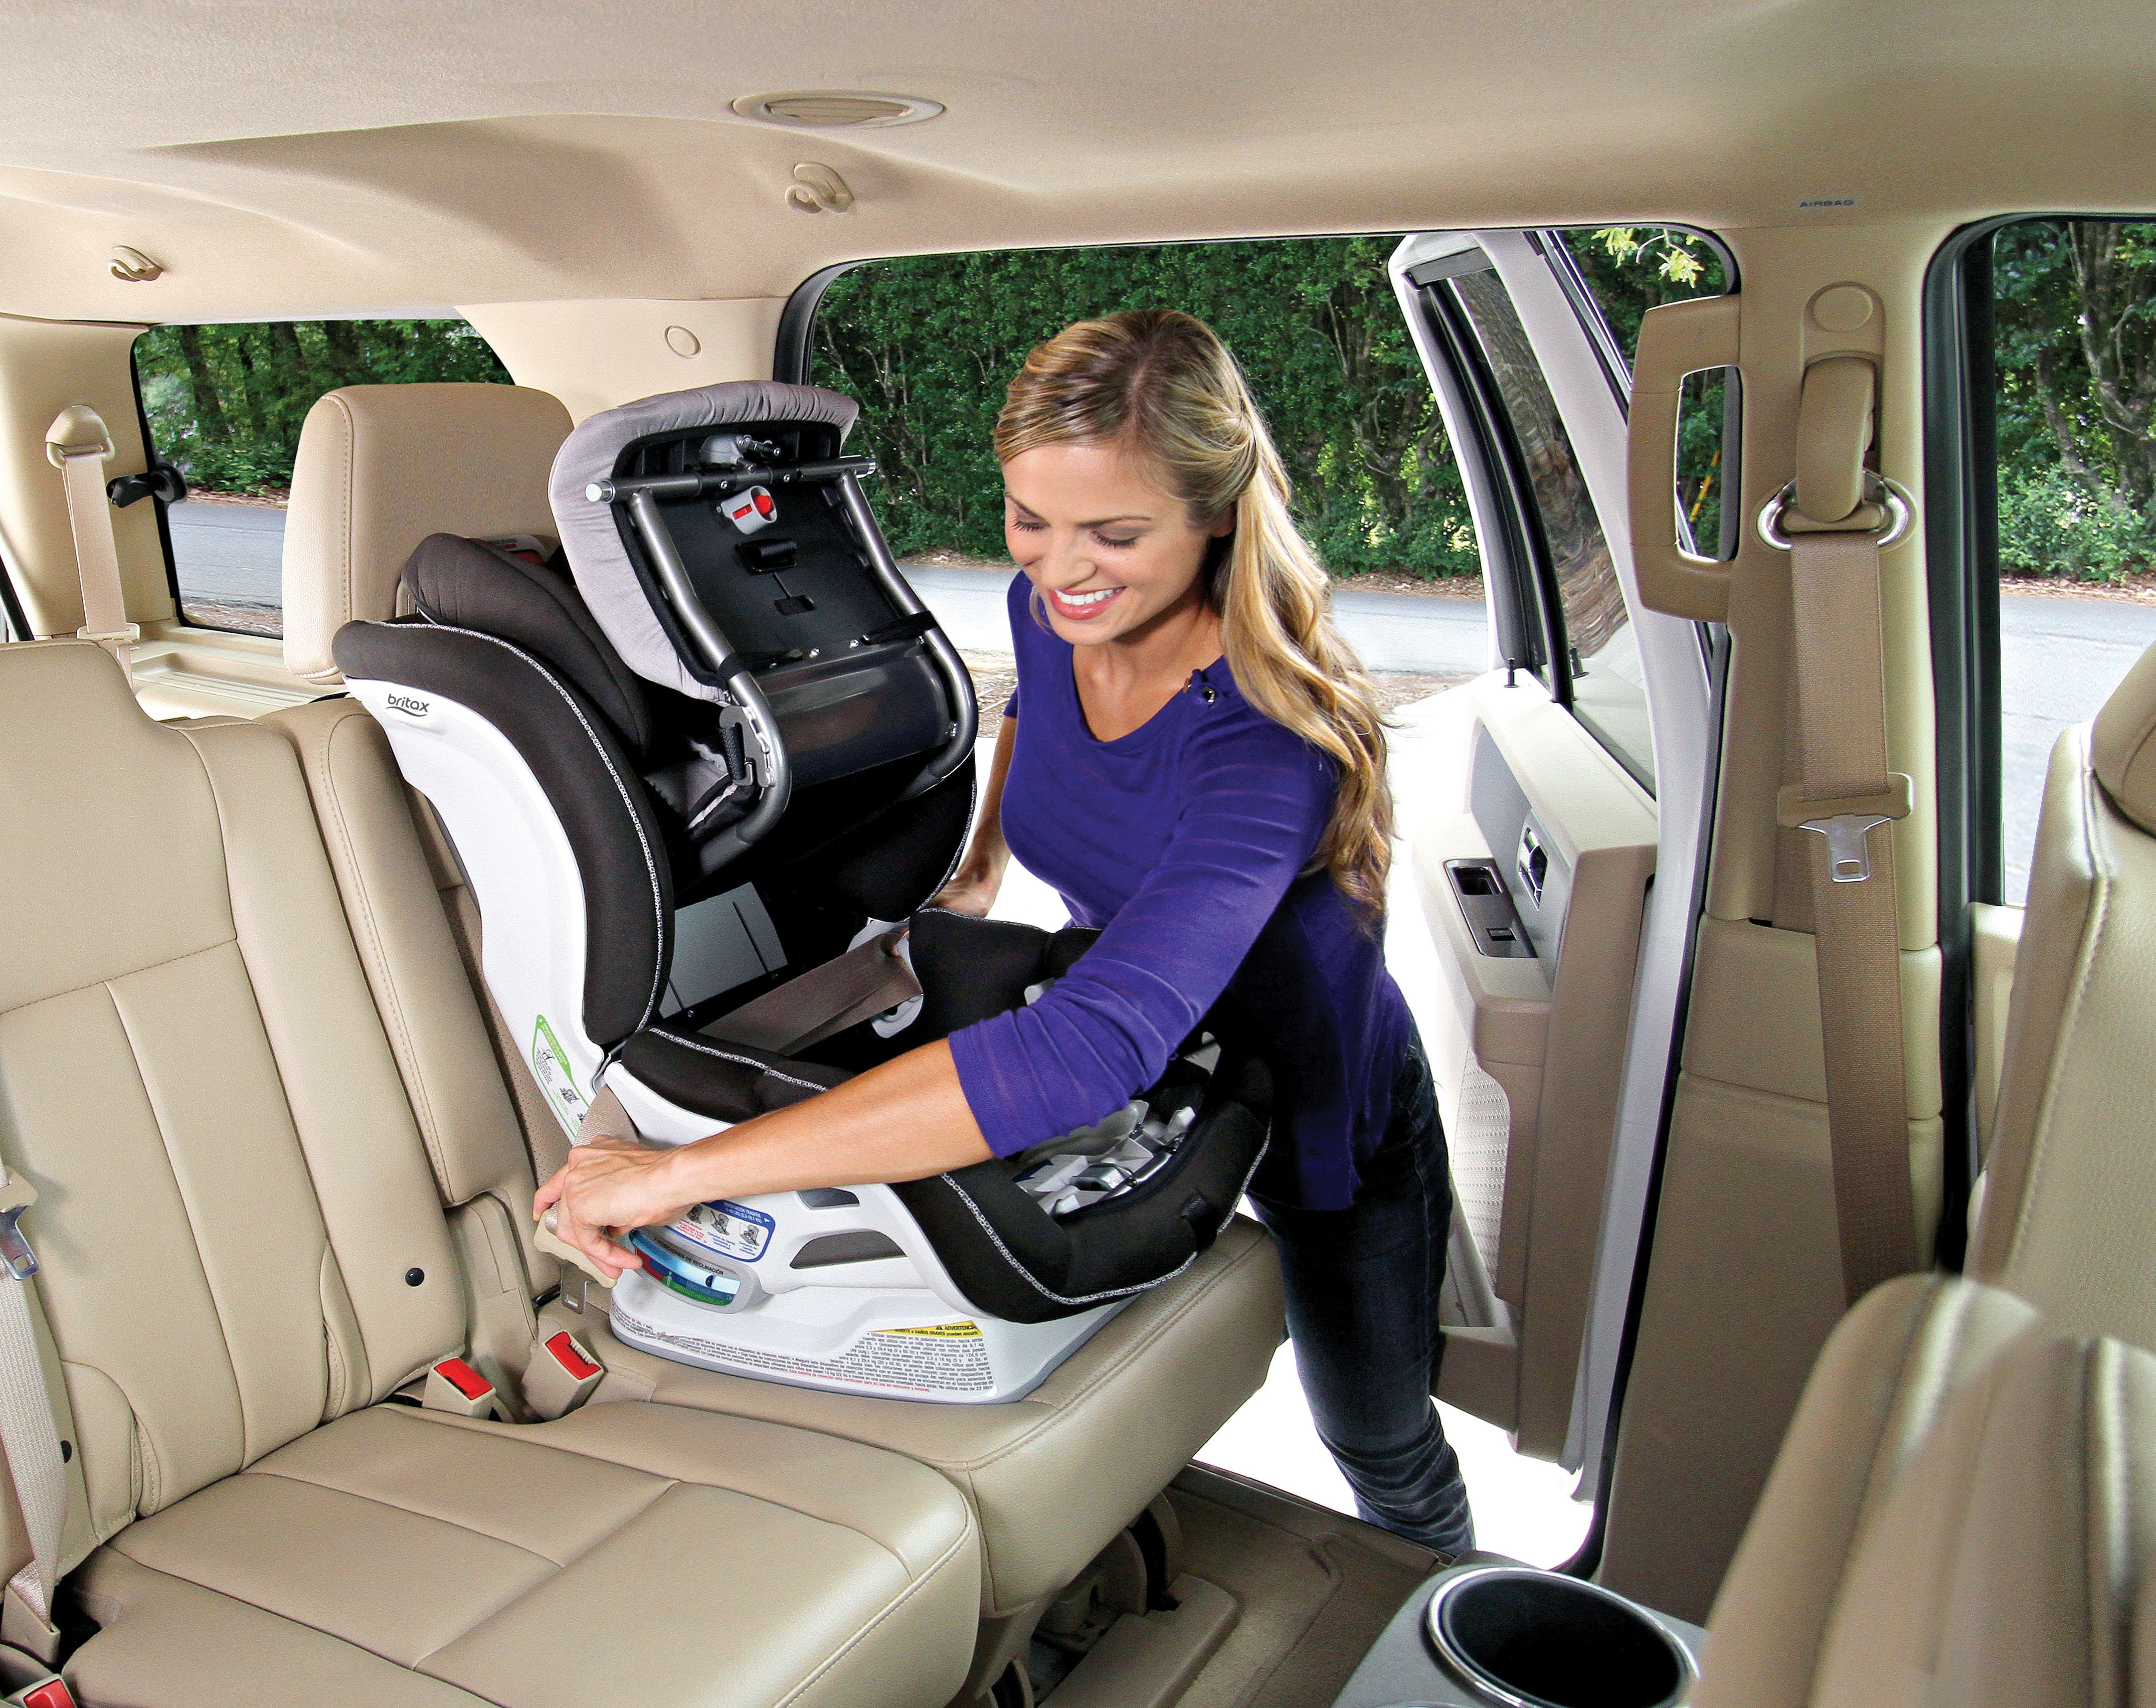 Easy Install and Extra Cozy: Britax ClickTight UltimateComfort ...